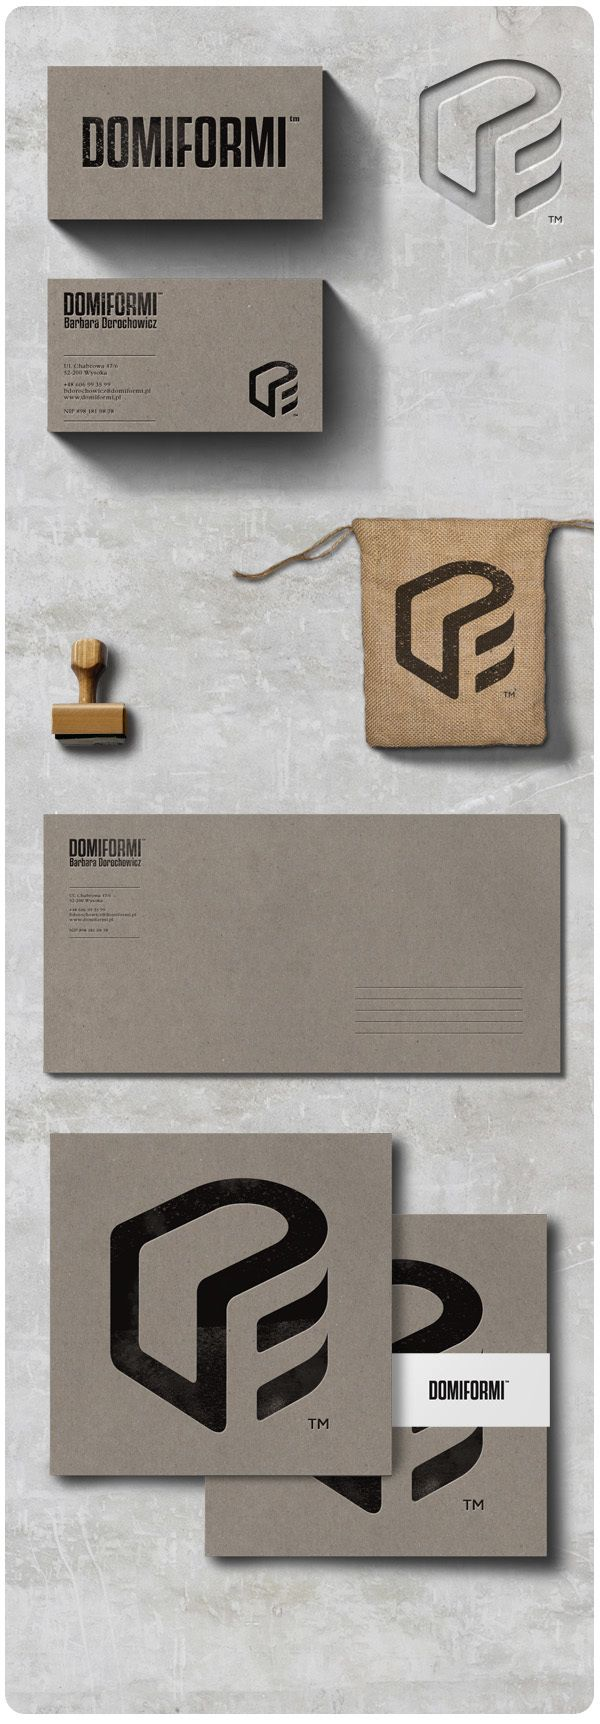 DF - Concept by Marcin Przybys, - This is some beautiful branding. #branding #logo #nice